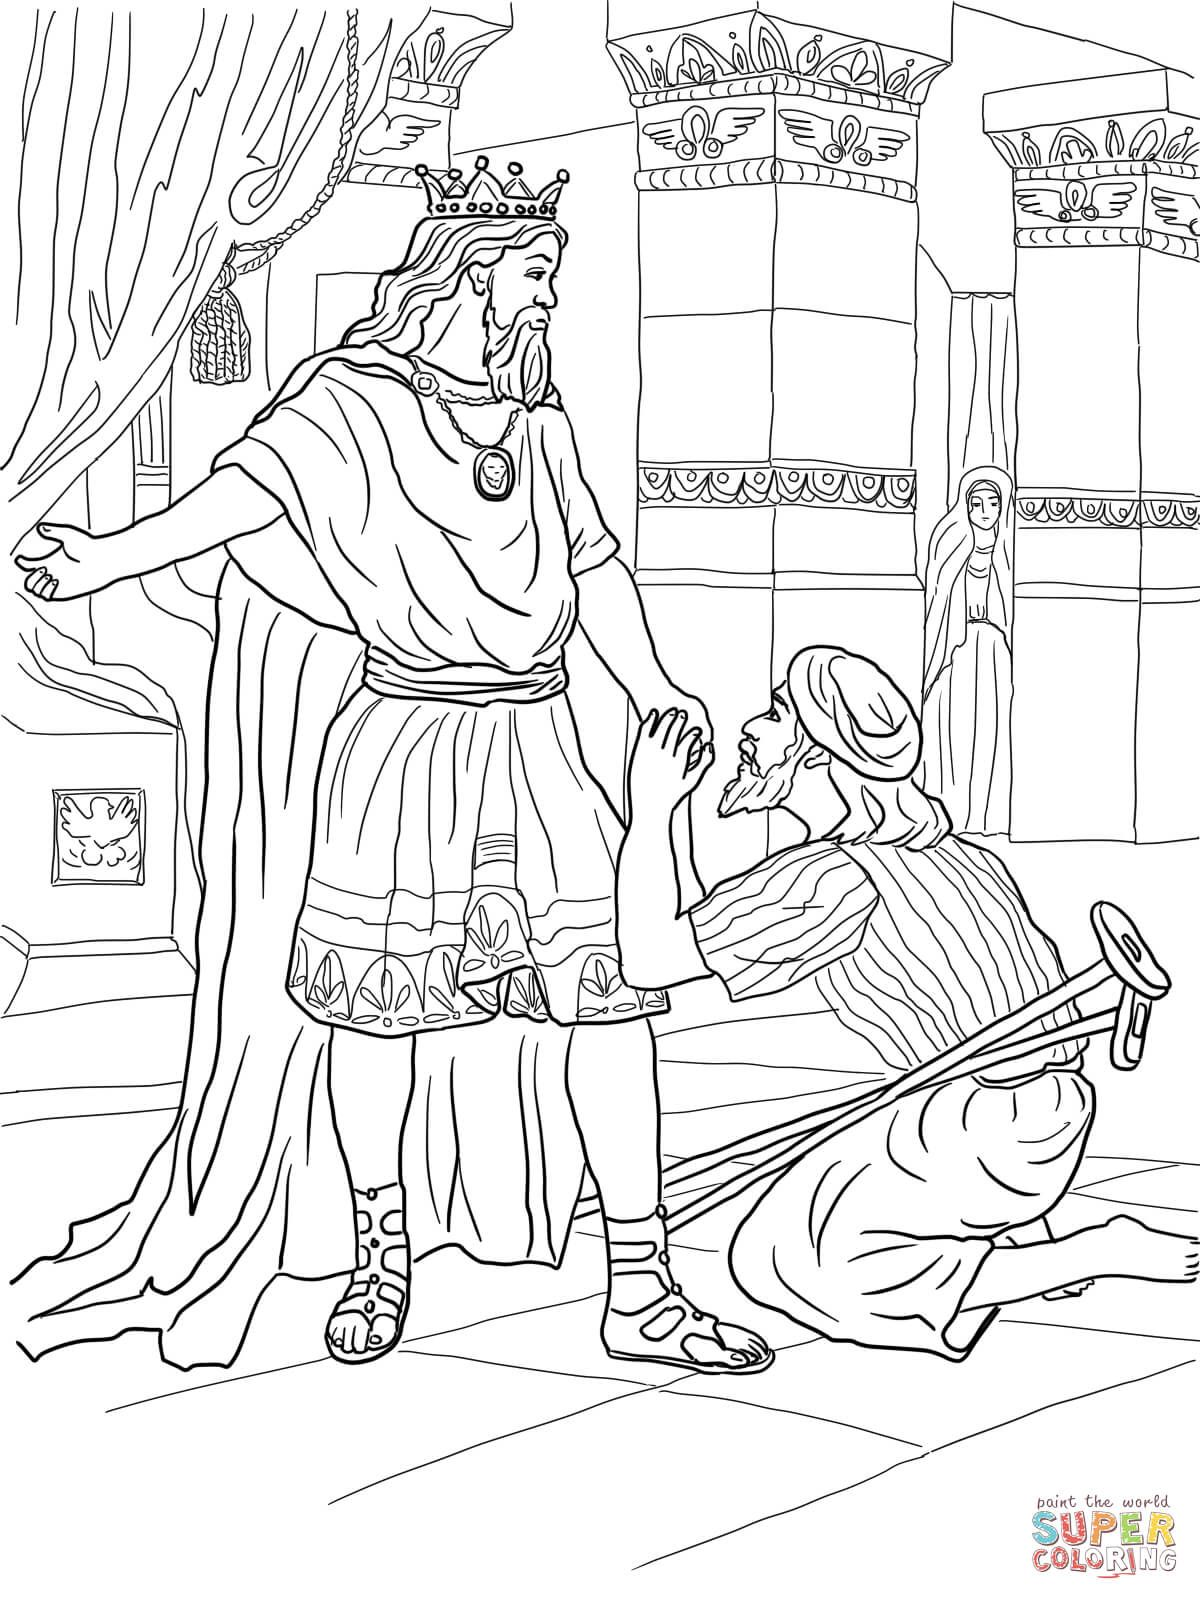 coloring pages david and jonathan - photo#22